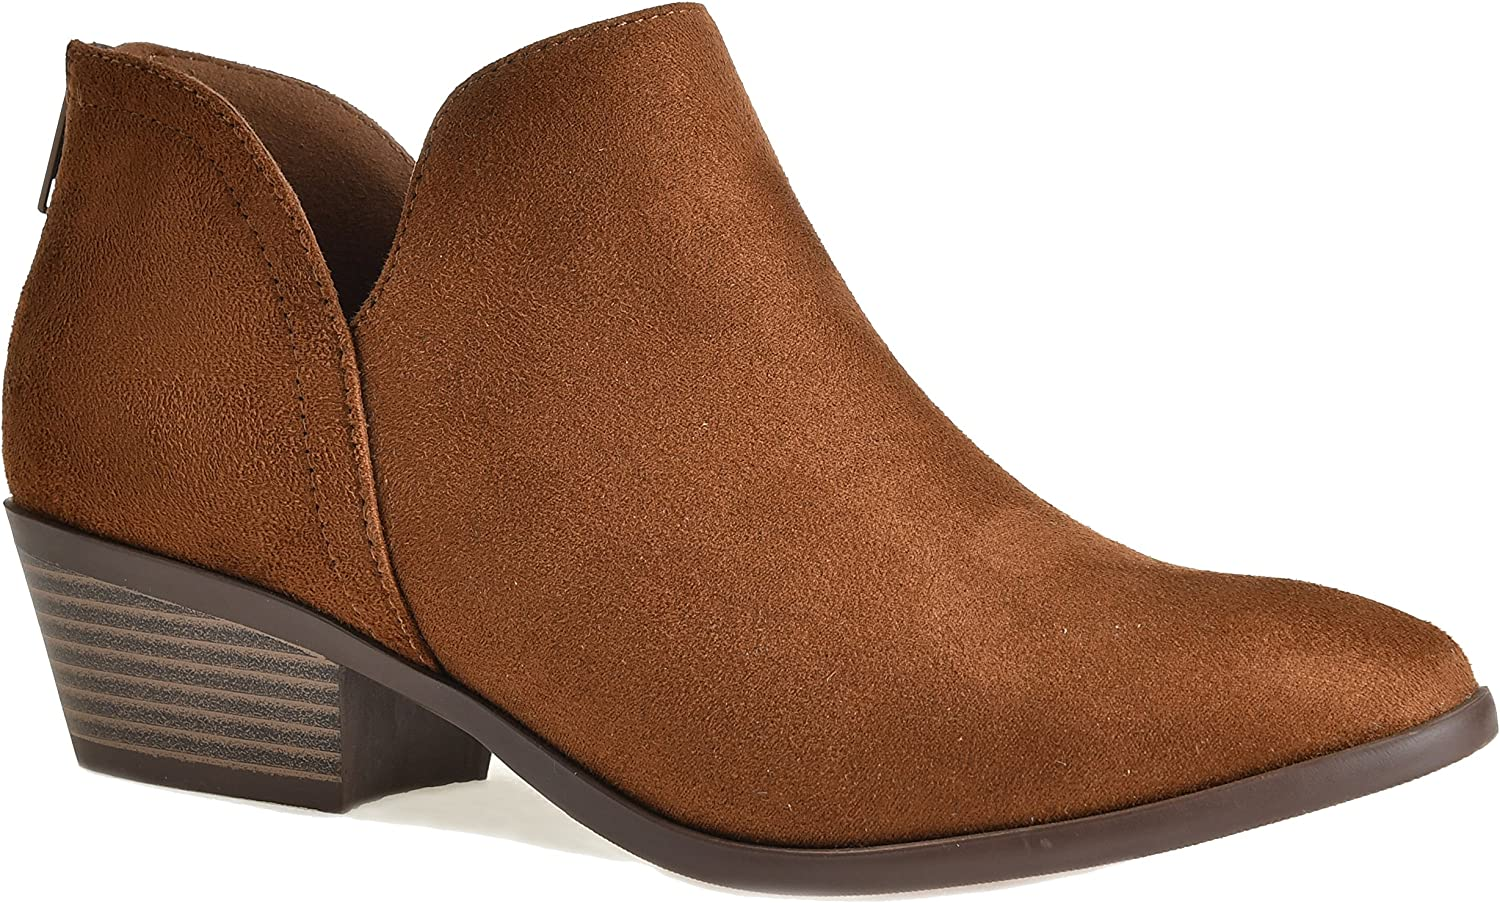 LUSTHAVE Women's Madeline Western Almond Round Toe Slip on Bootie - Low Stack Heel - Zip Up - Casual Ankle Boot